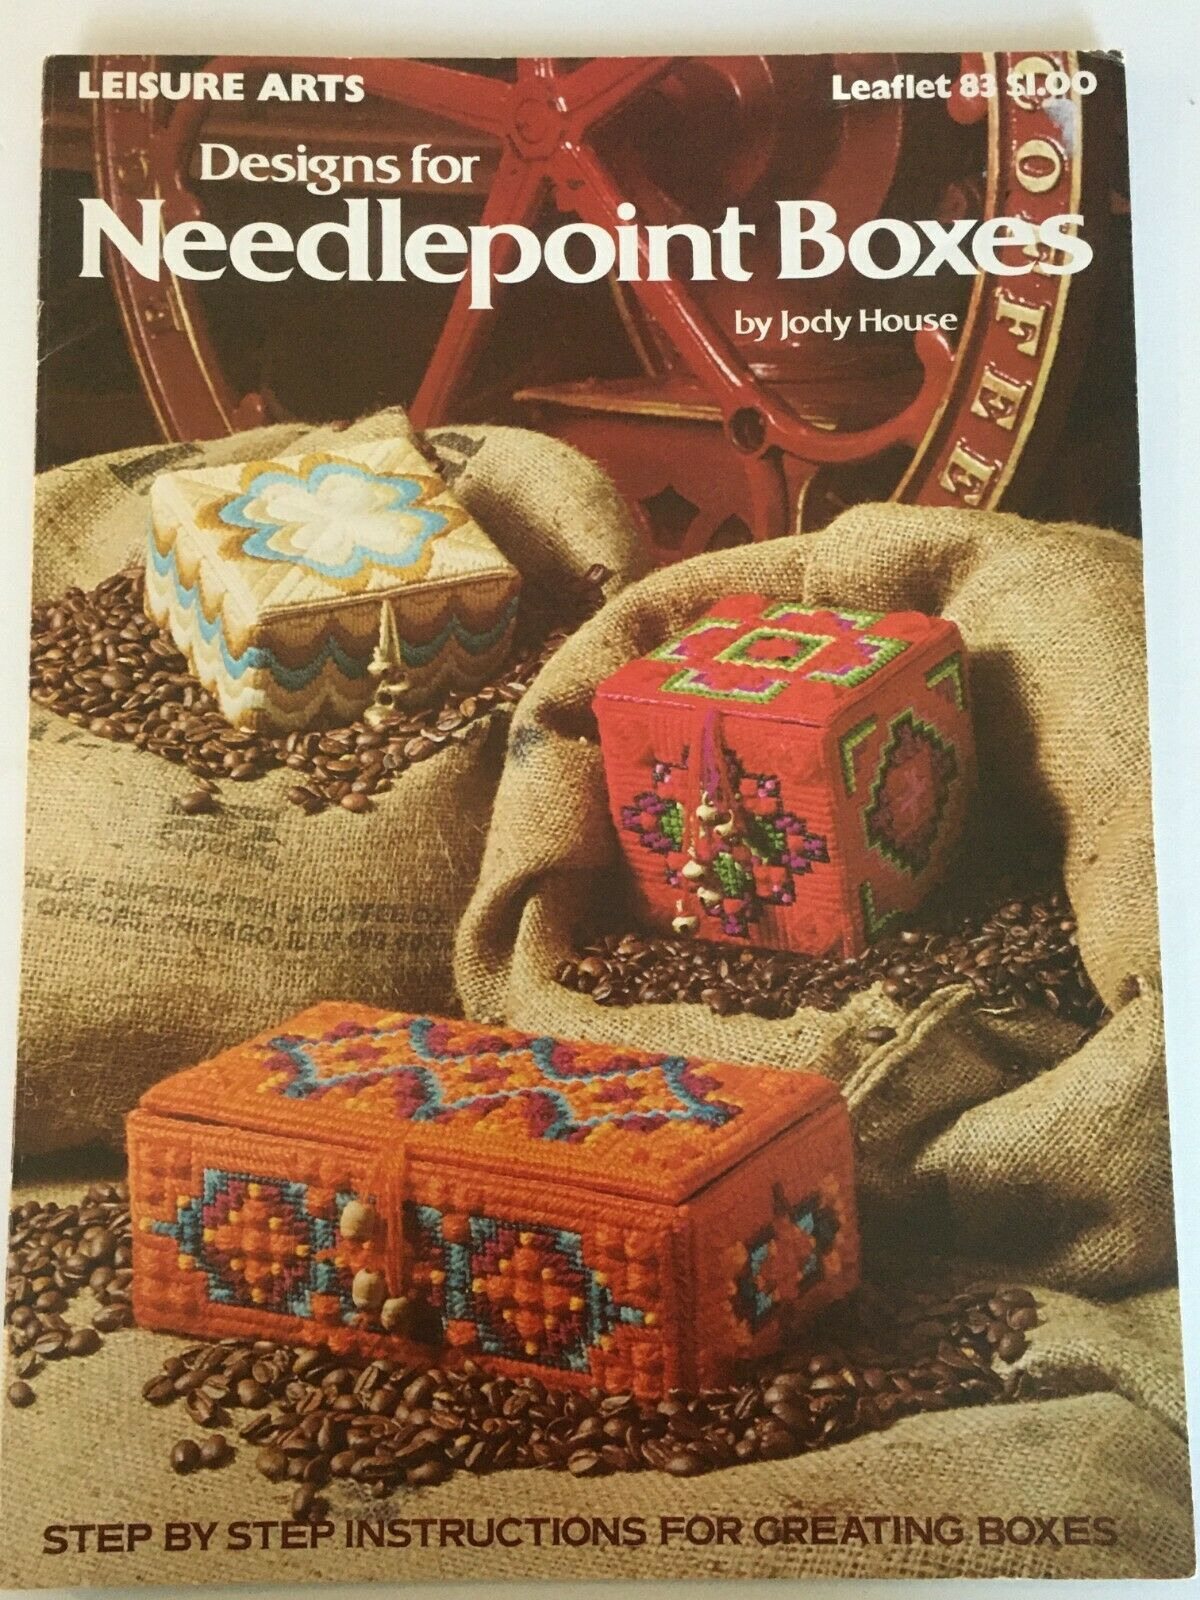 Primary image for Leisure Arts Designs for Needlepoint Boxes Jody House Leaflet 83 Sewing Crafts